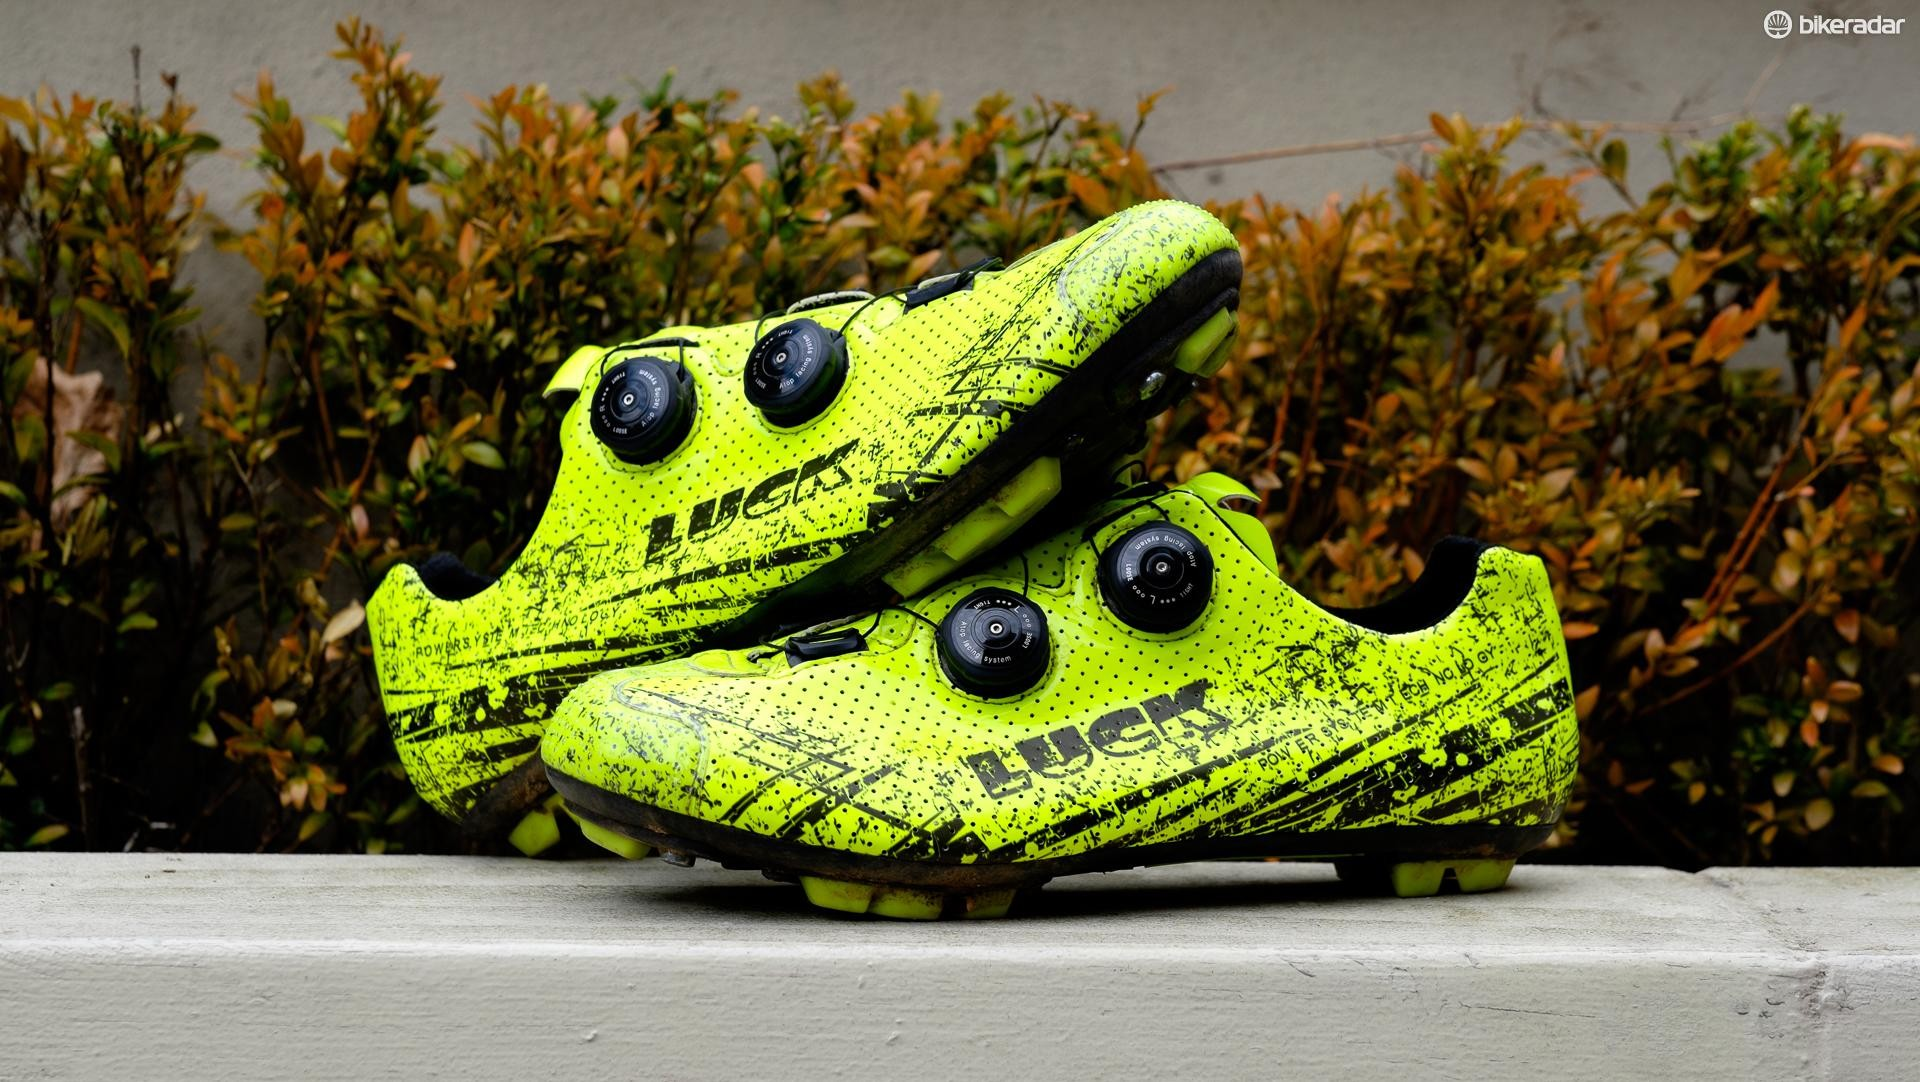 These shoes are perfect for the out and out racer who wants a no expense spared performance shoe